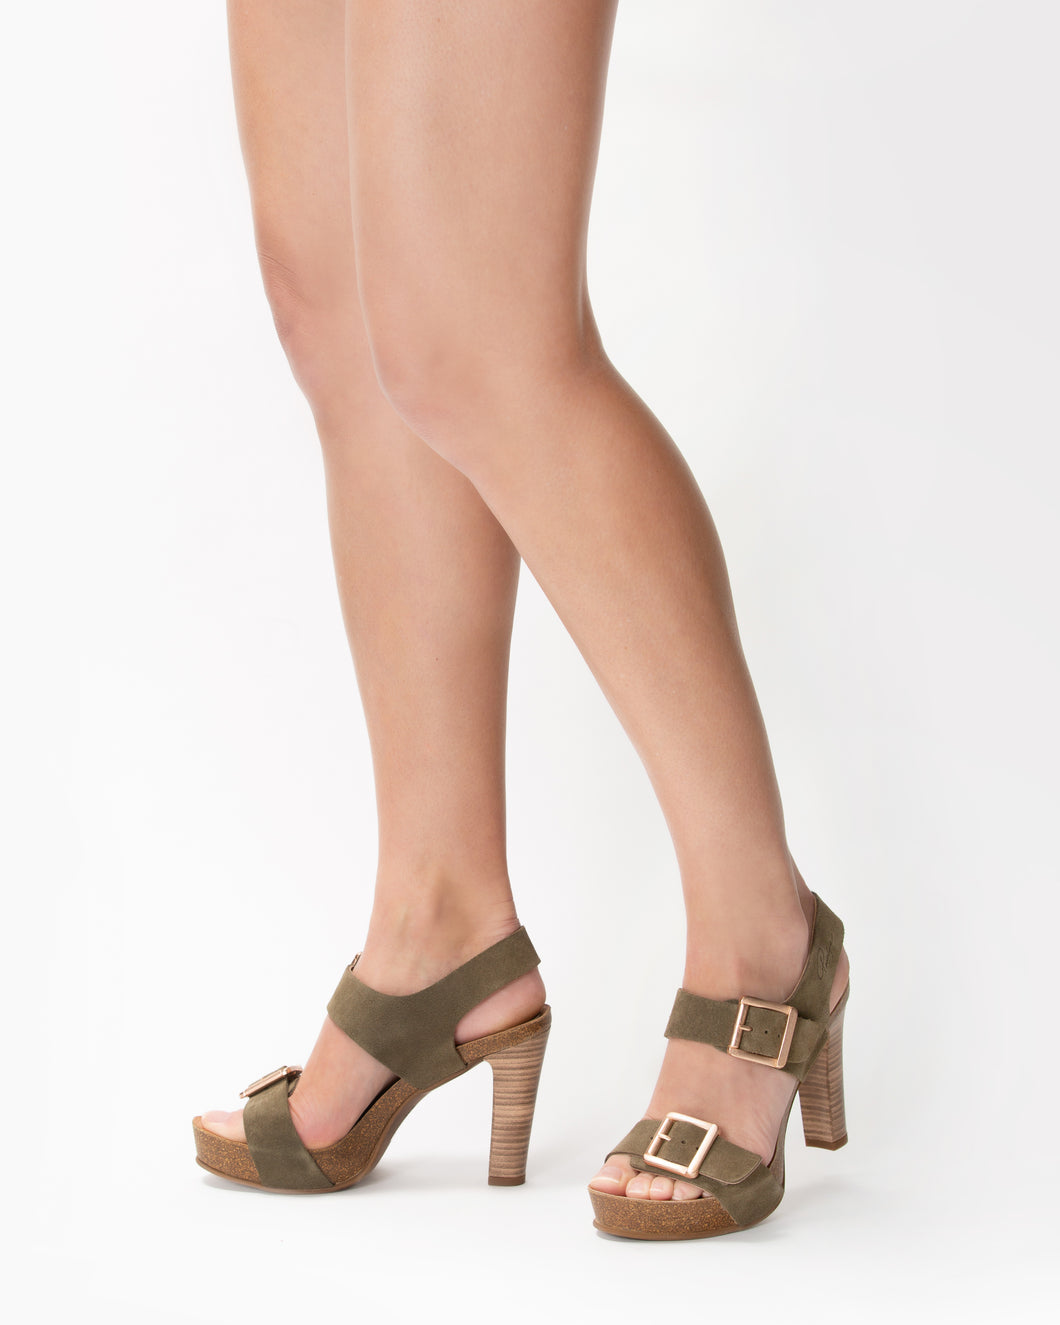 Double Buckle Trebol - European Heels